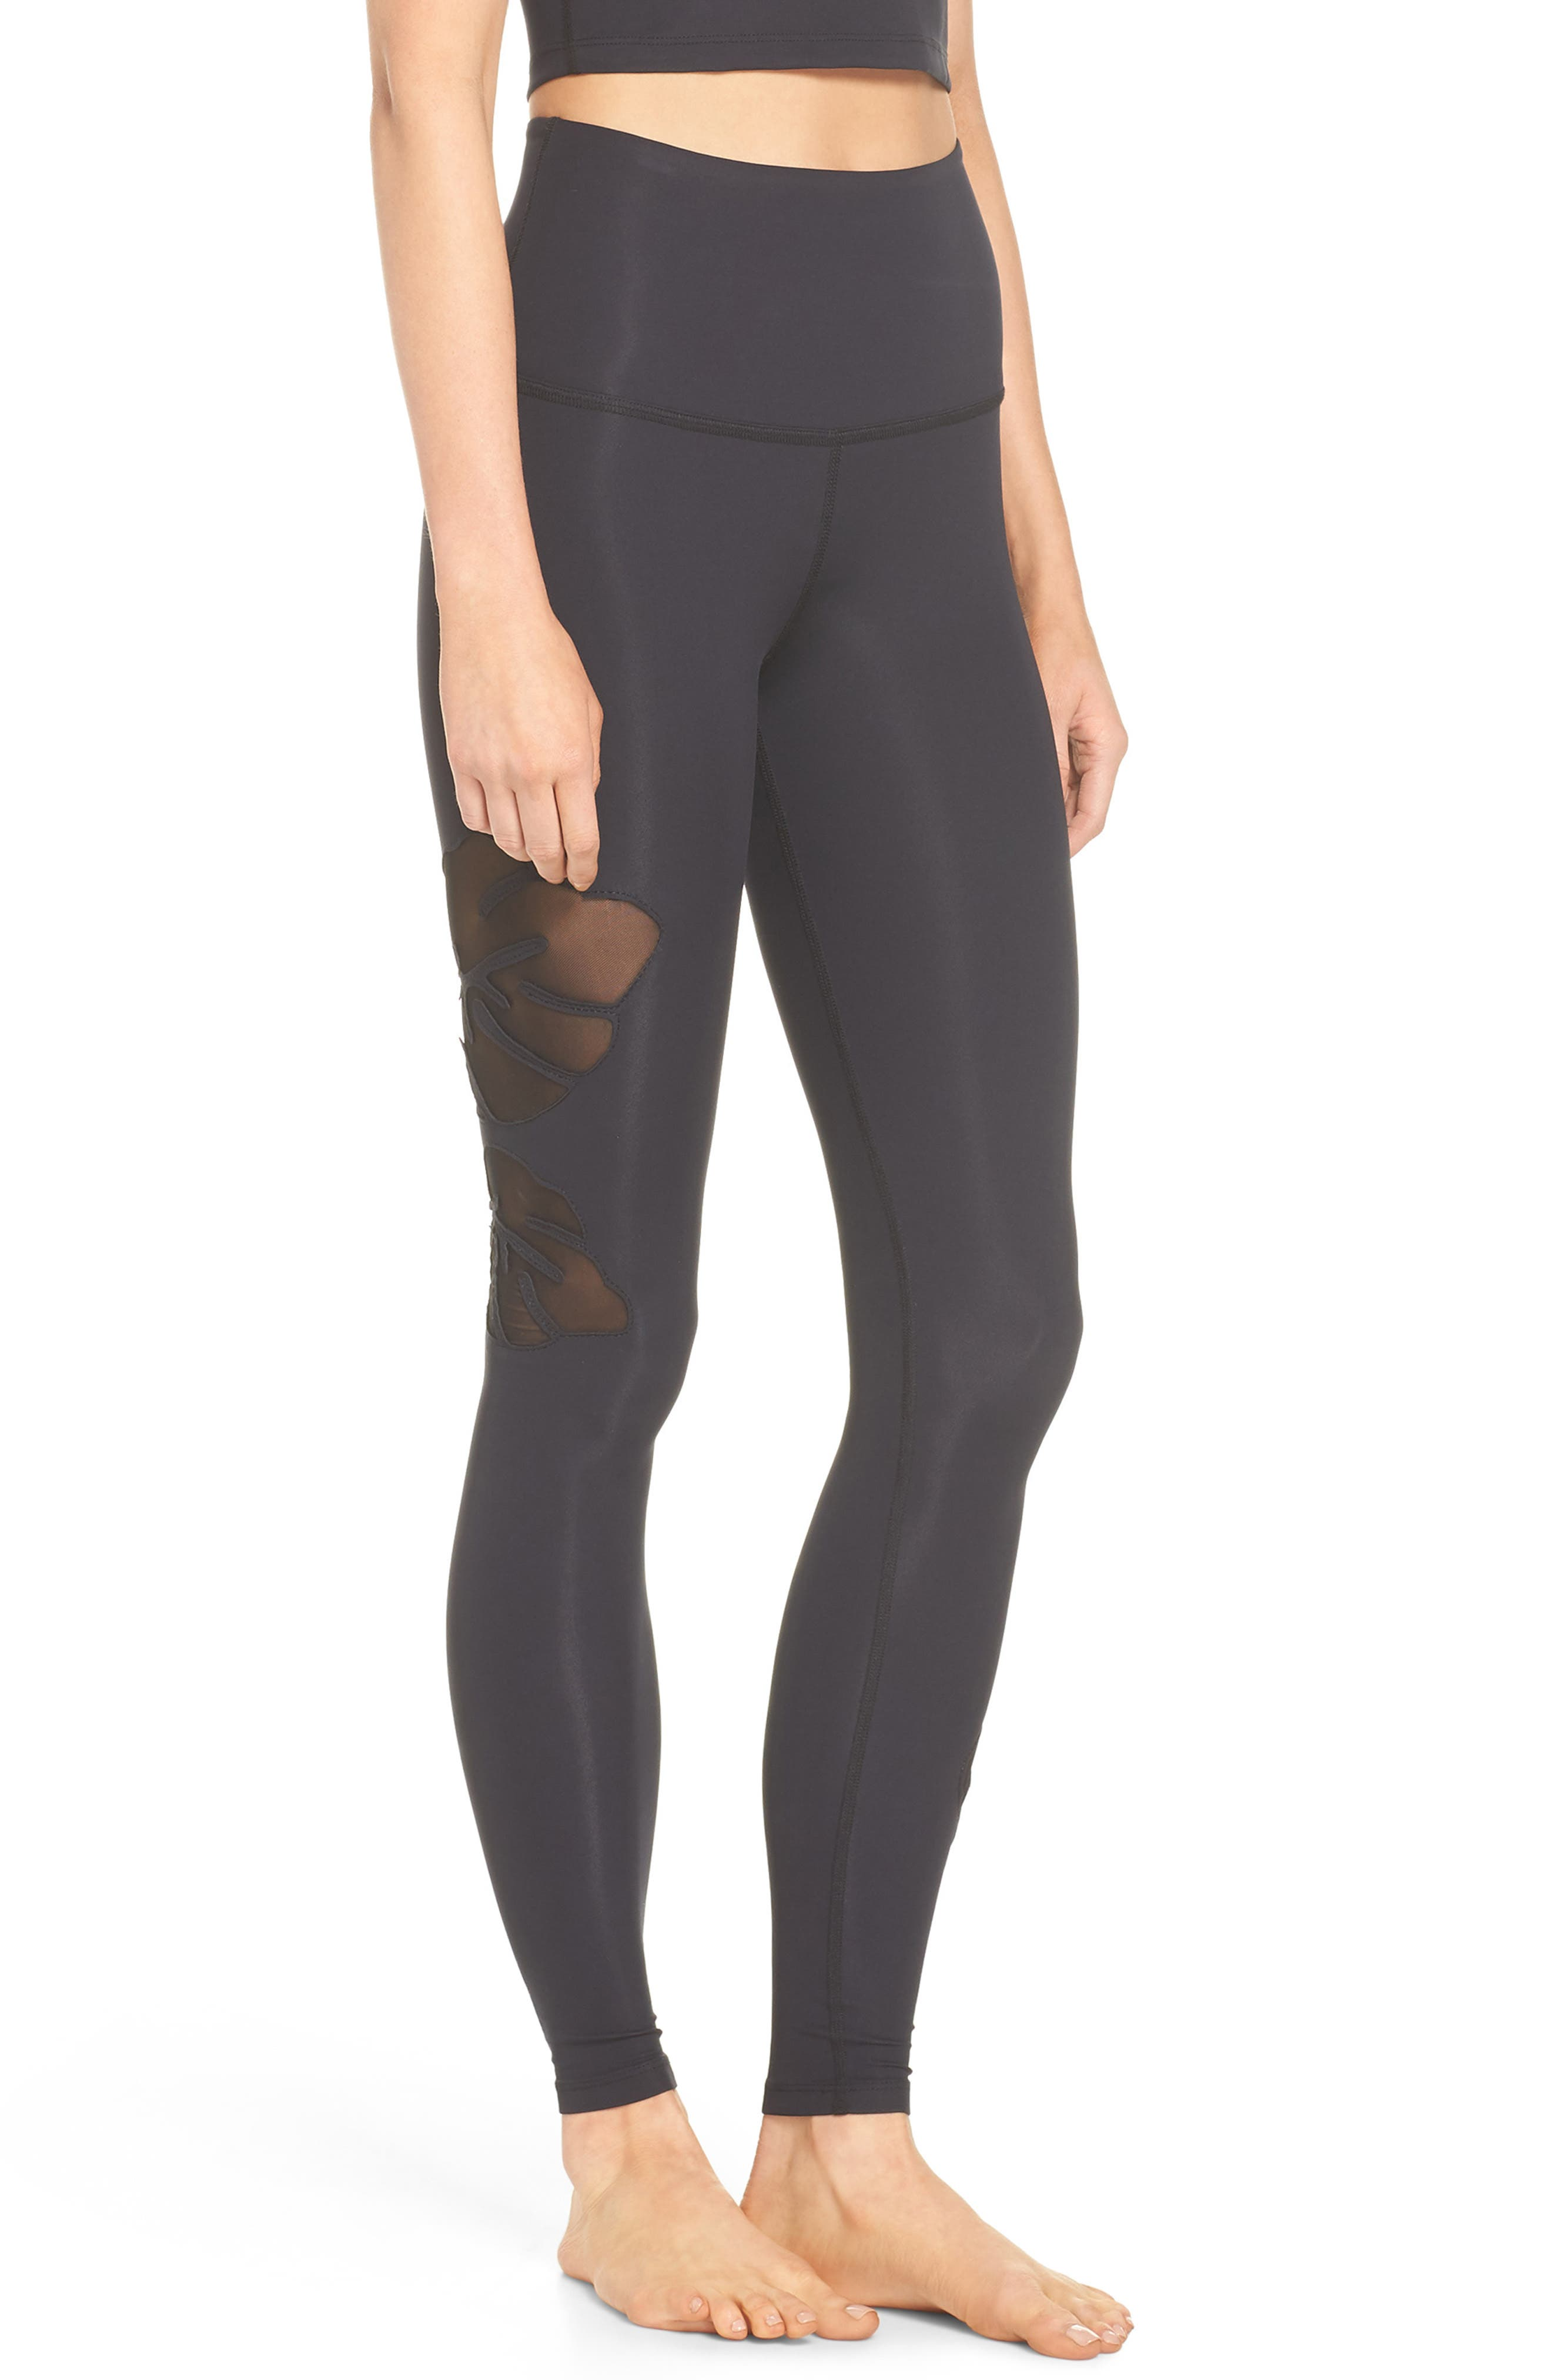 Take Leaf High Waist Leggings,                             Alternate thumbnail 3, color,                             002